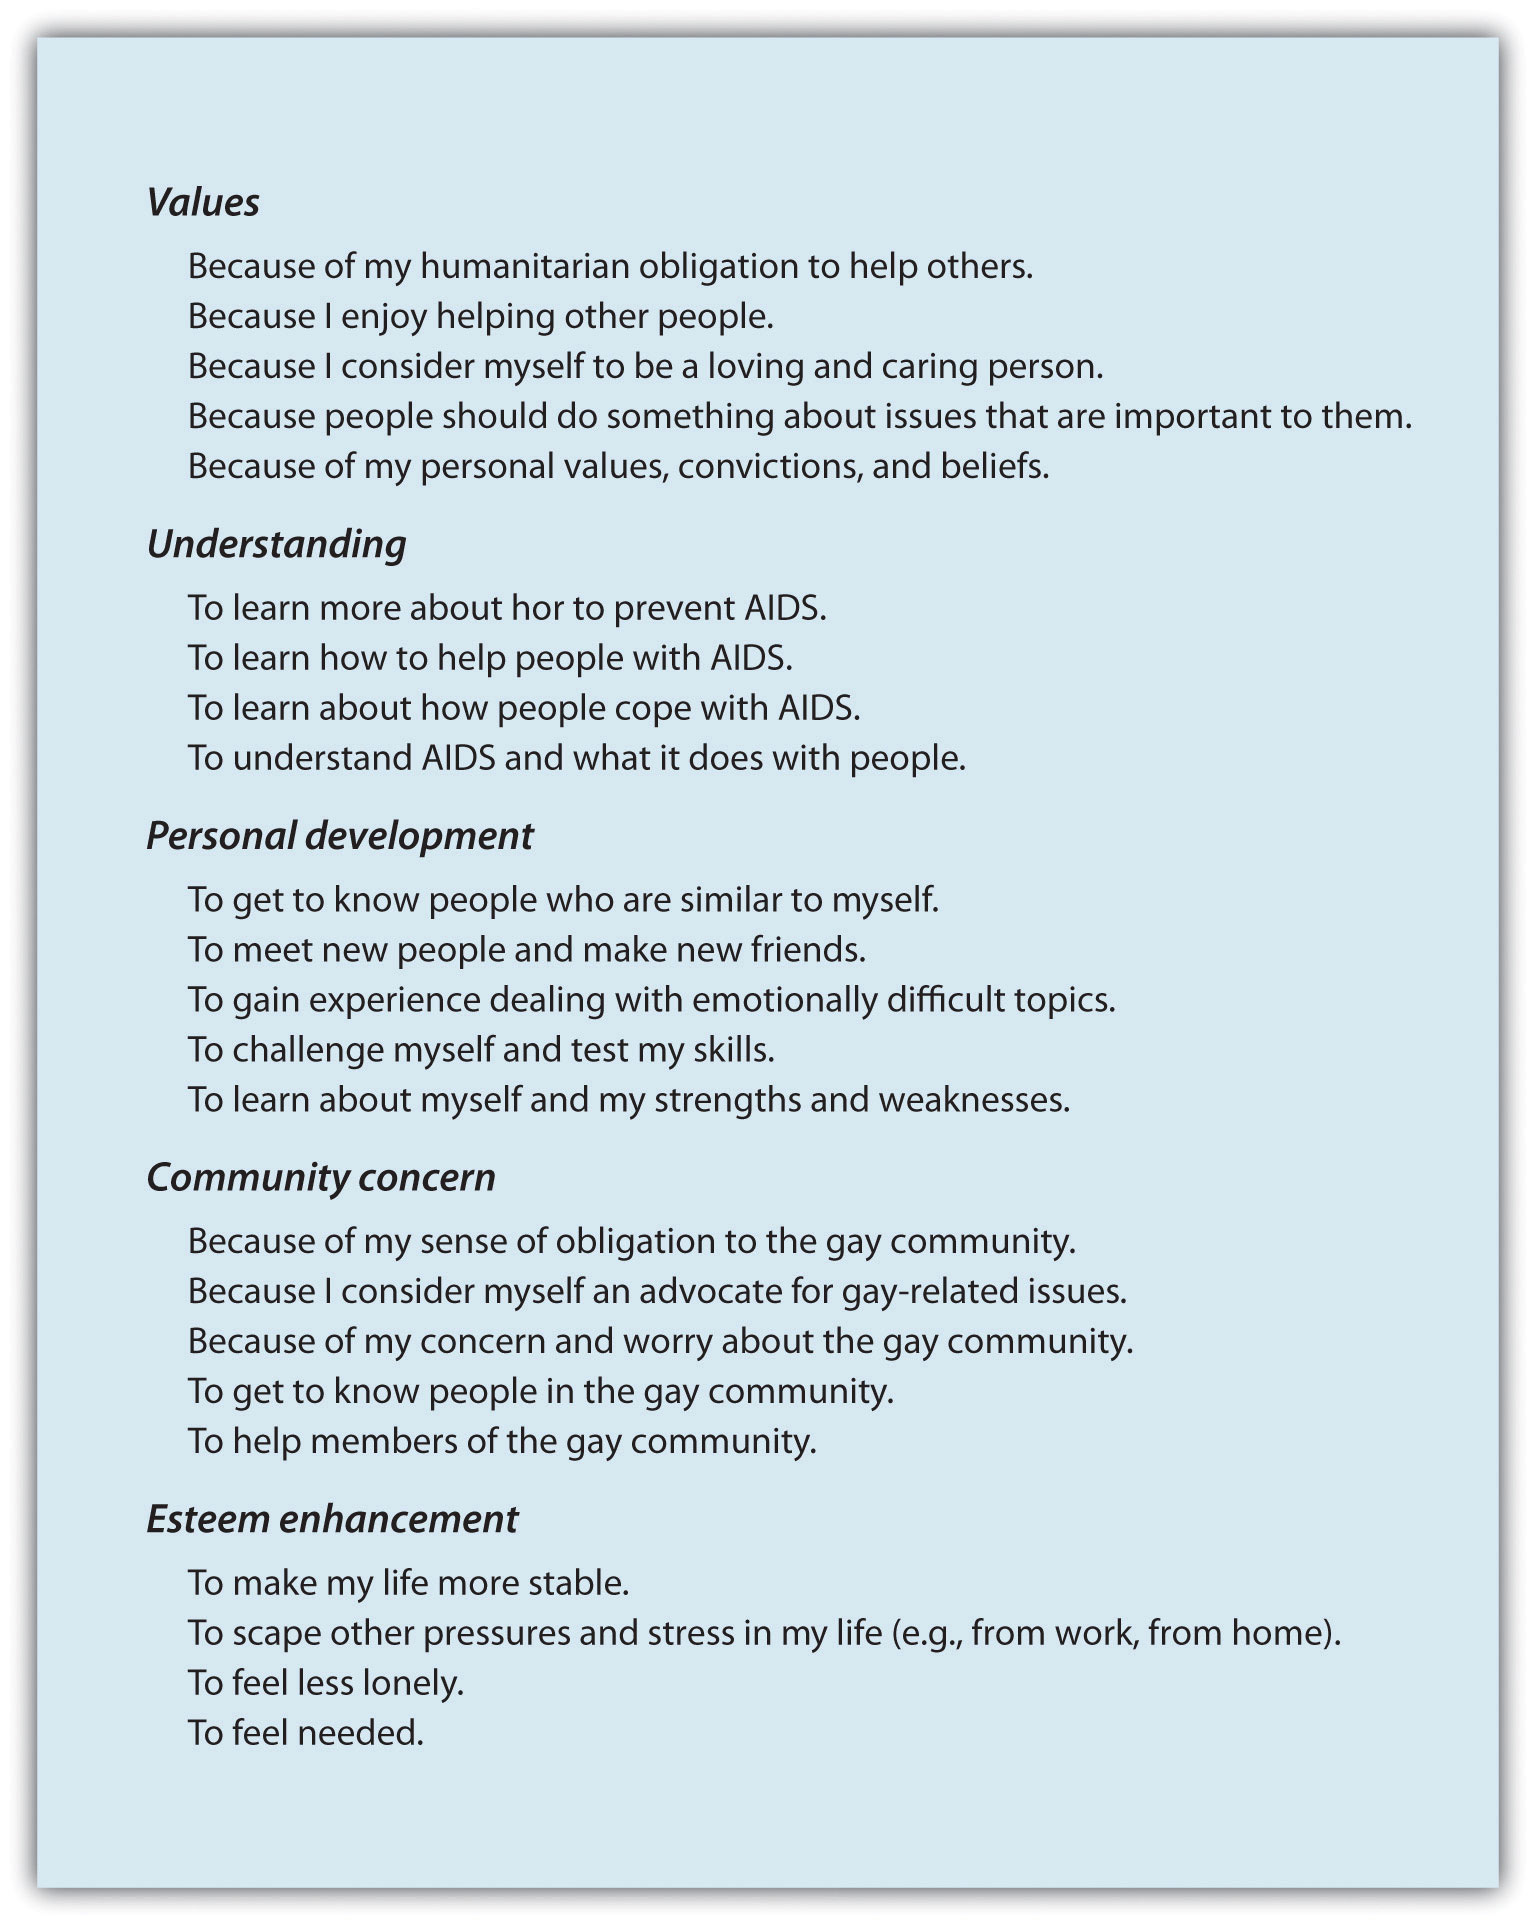 other determinants of helping principles of social psychology figure 8 12 reasons for volunteering to help aids victims from omoto and snyder 1995